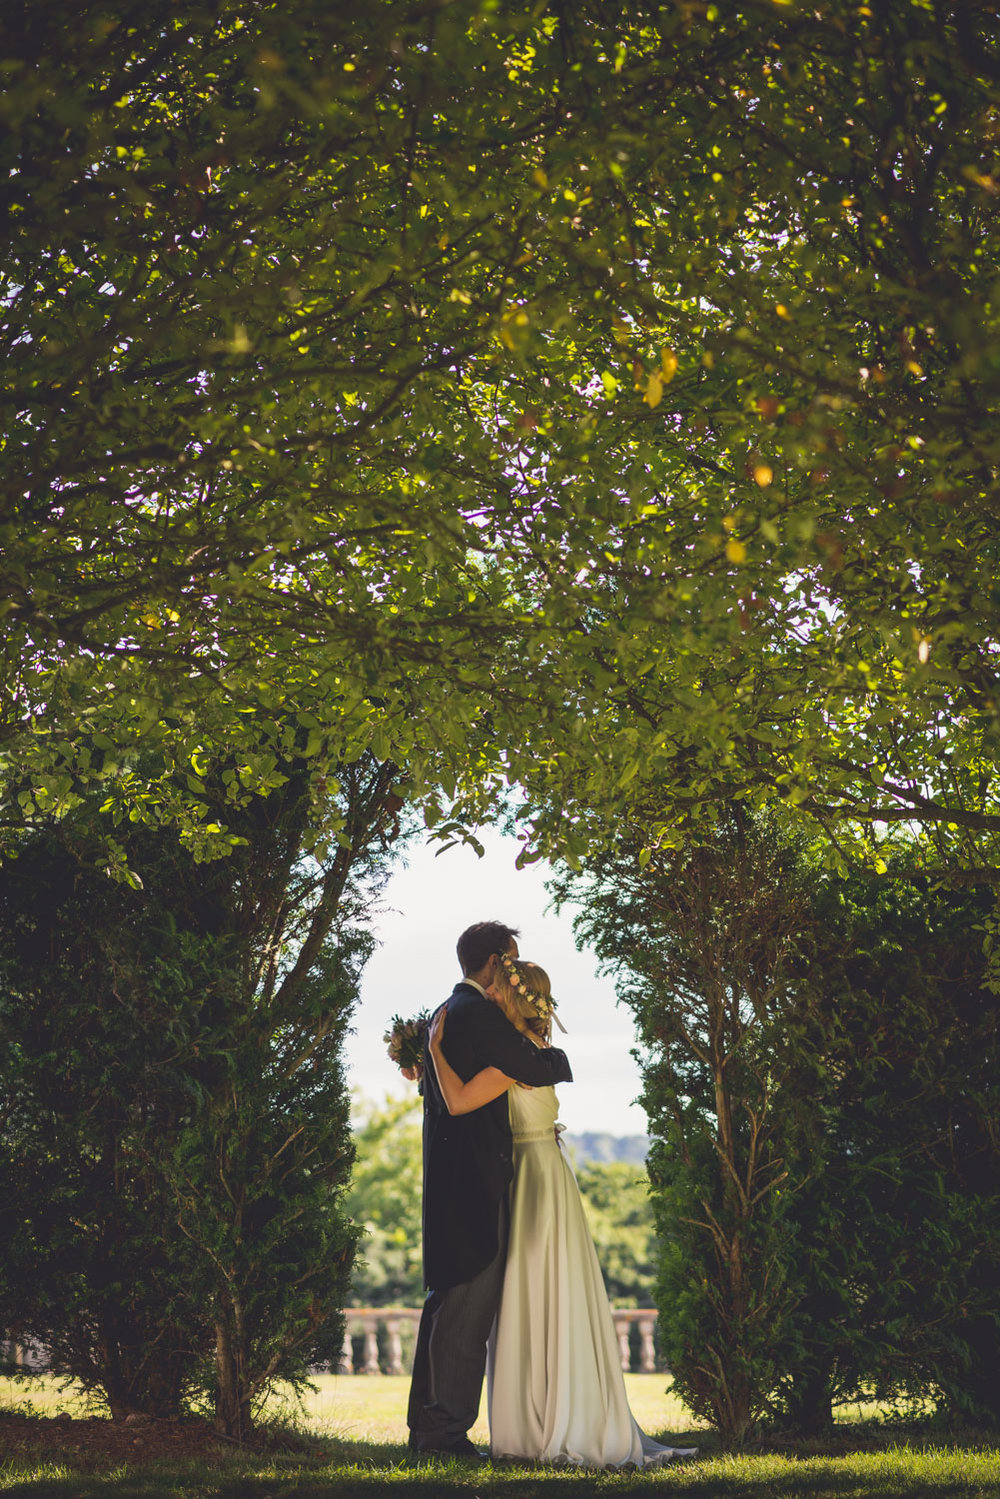 Wedding photography at Bridwel, Devon